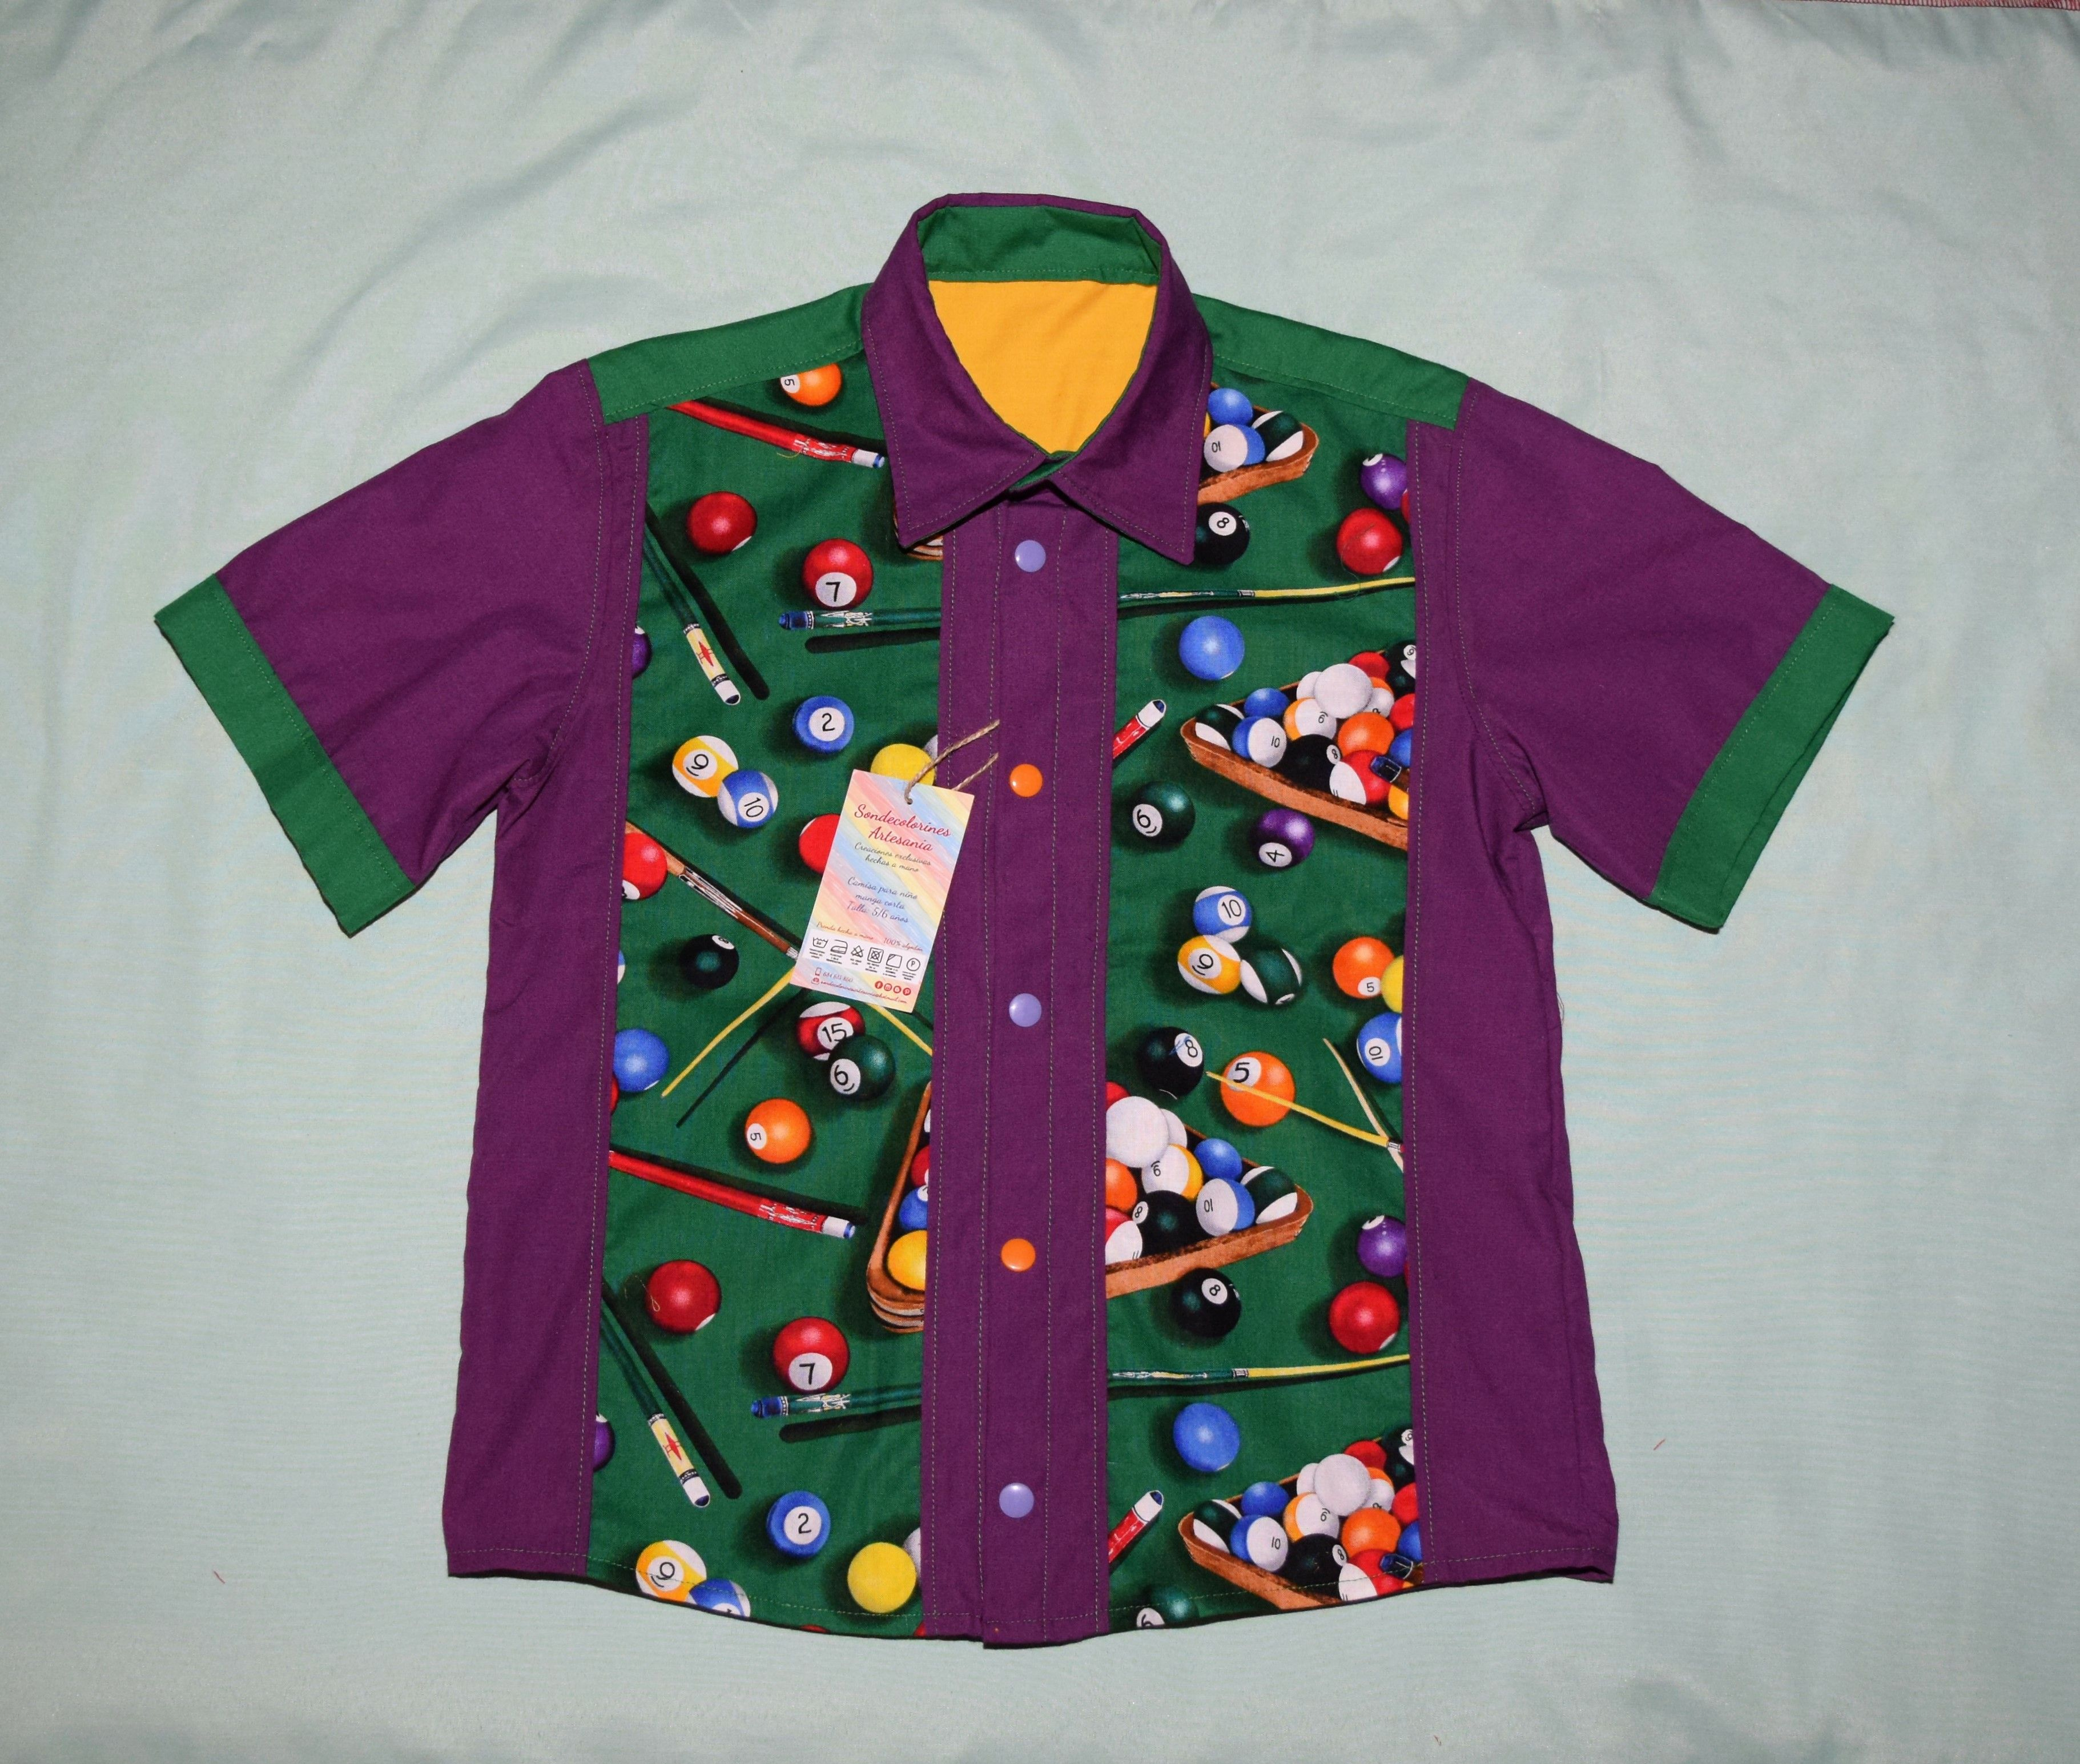 Shirts for children